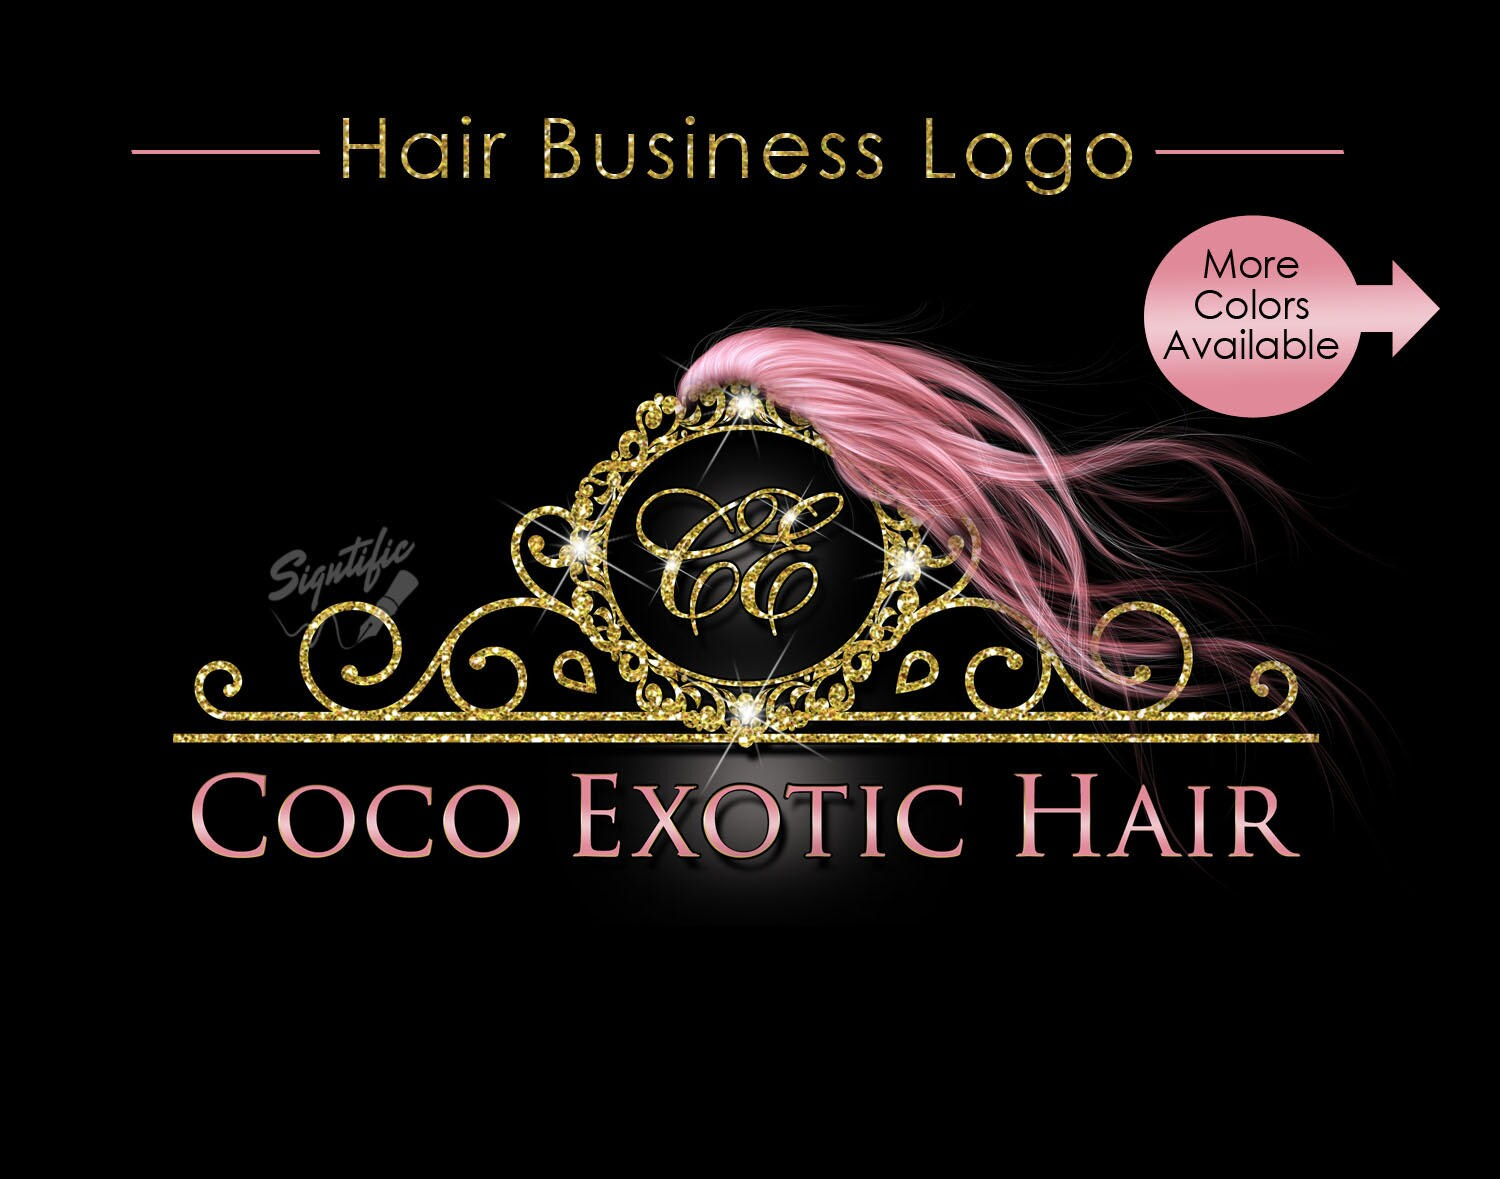 hair extensions business logo rose